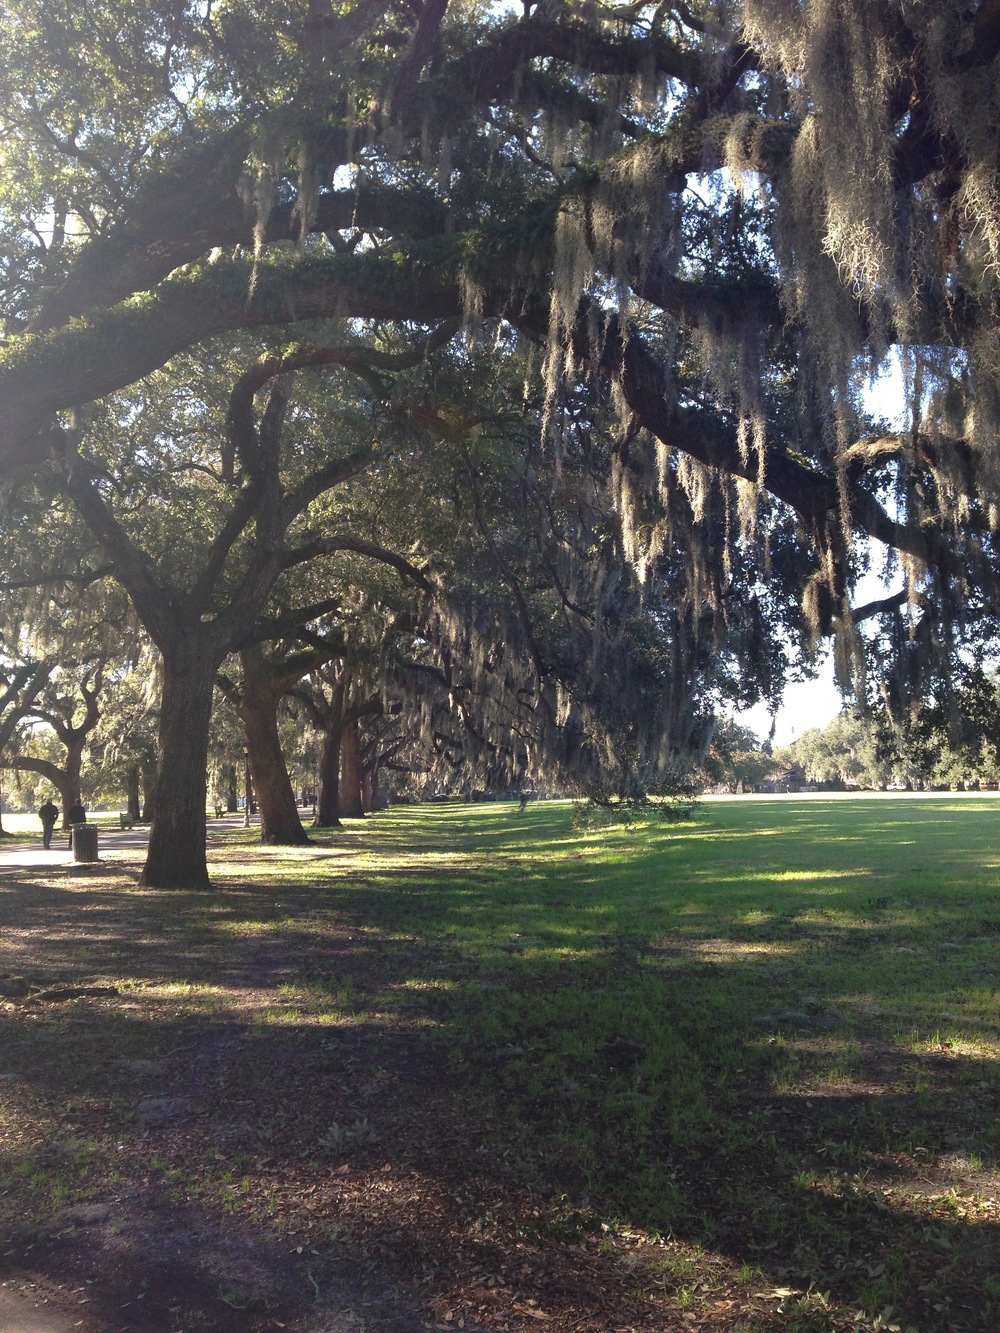 Iconic live oak trees.